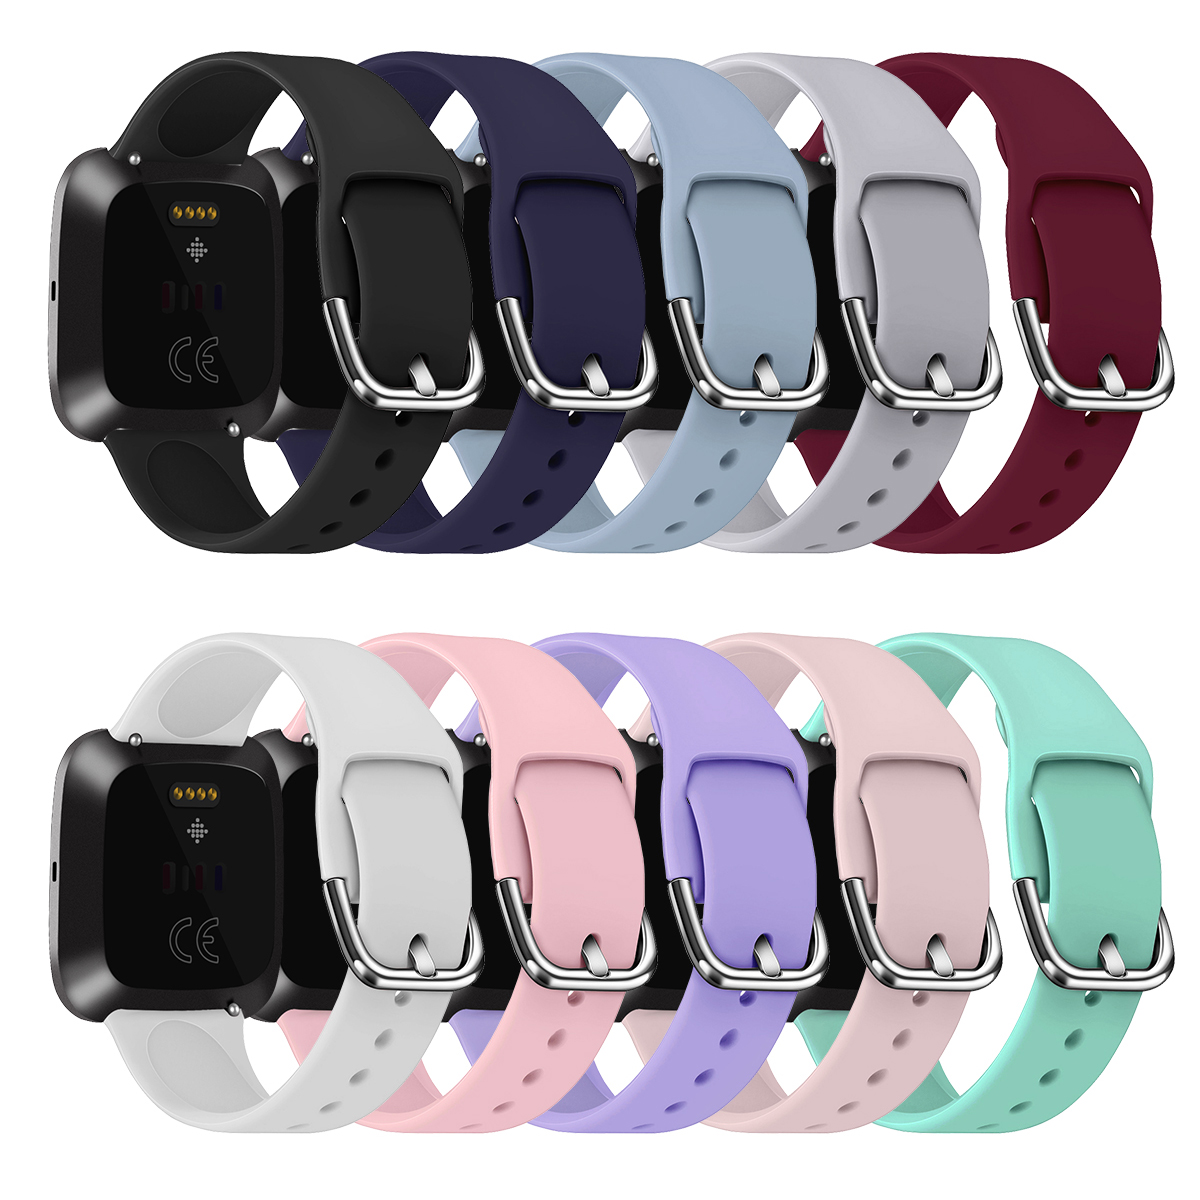 S/L Anti-sweat Sport Watch Wristband New Replacement Silicone Watch Strap Wrist Strap For Fitbit Versa 2 Smart Watch Accessories